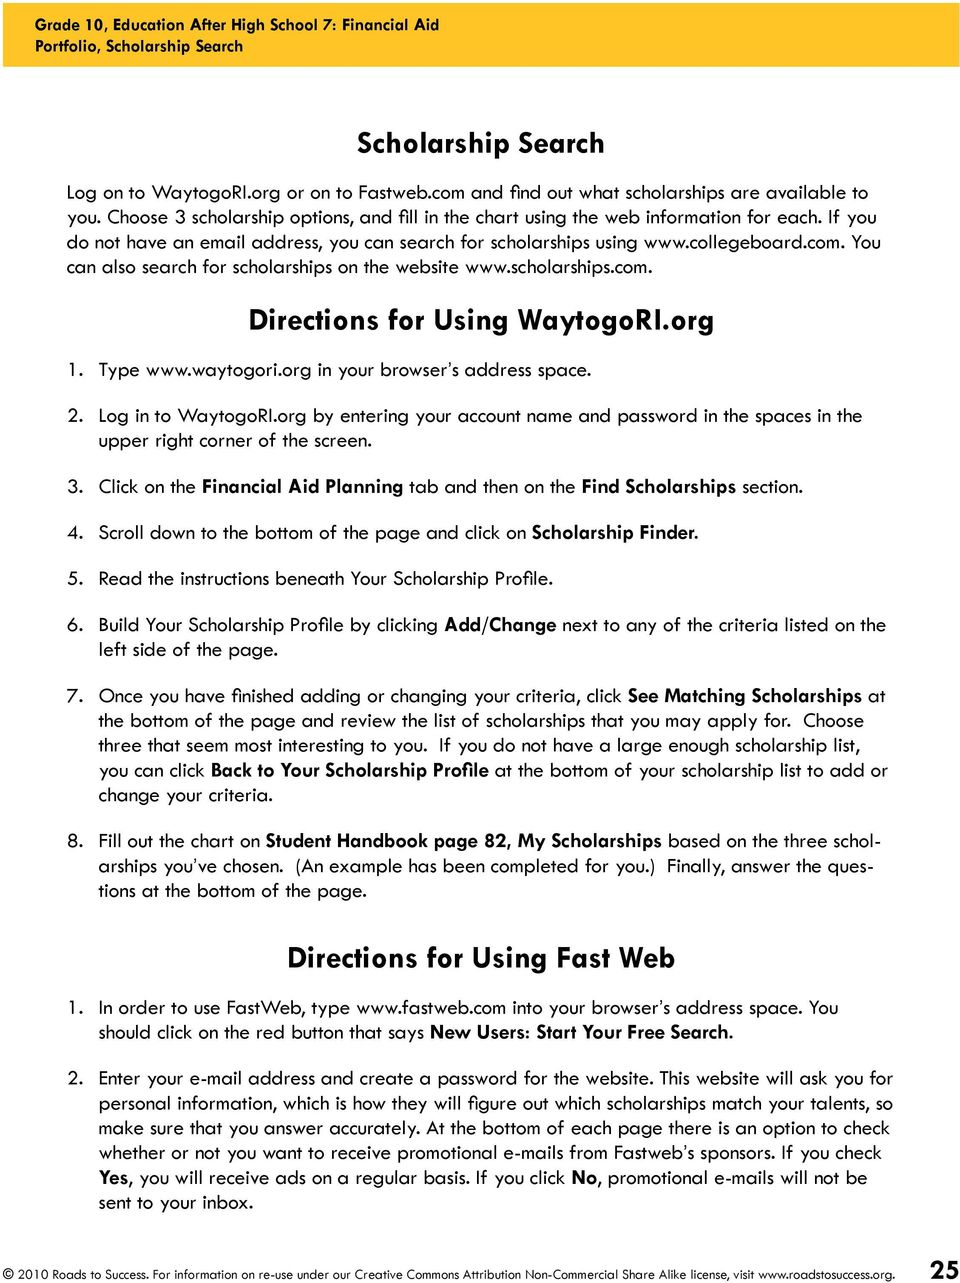 OBJECTIVES  The BIG Idea  How will I pay for college? - PDF